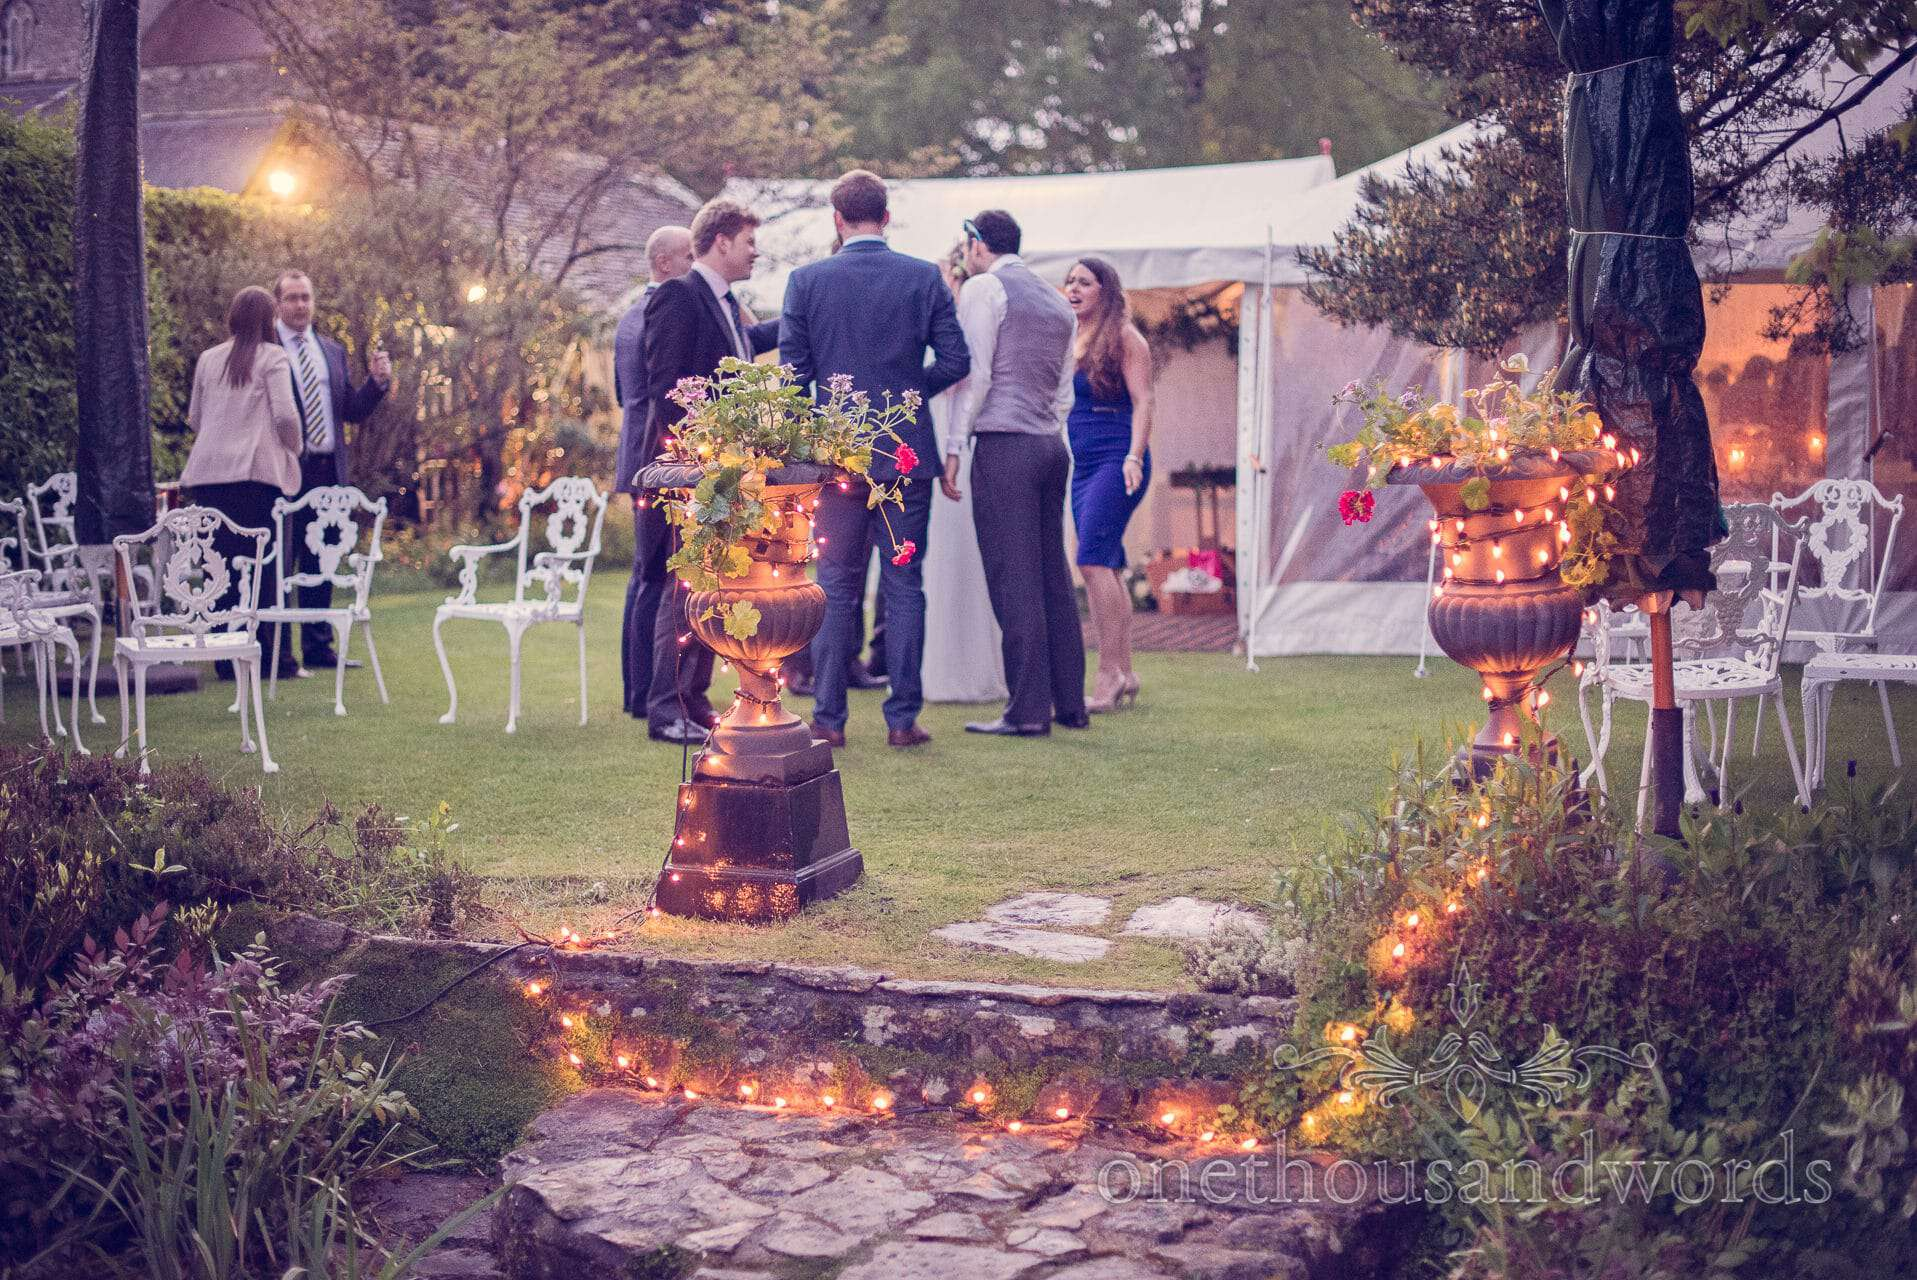 Wedding guests and fairy lights at The Priory Wareham wedding